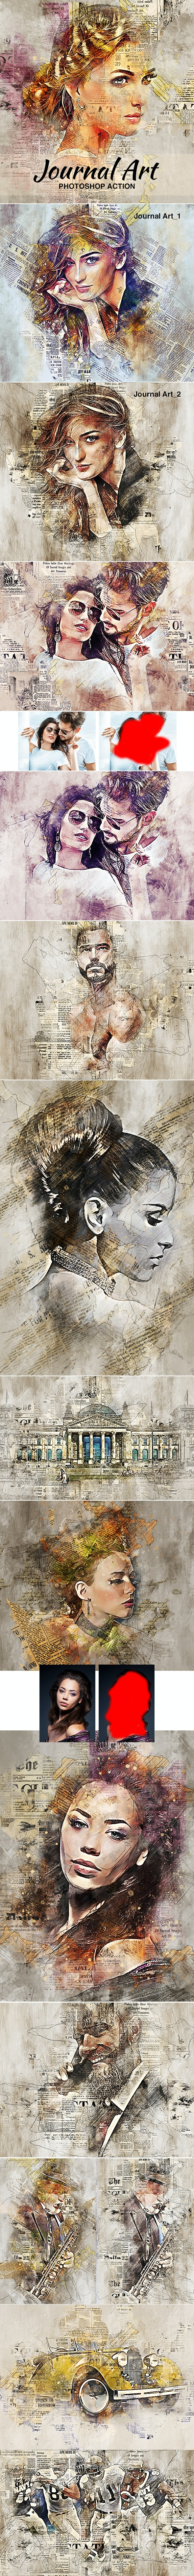 Journal Art Photoshop Action - Photo Effects Actions